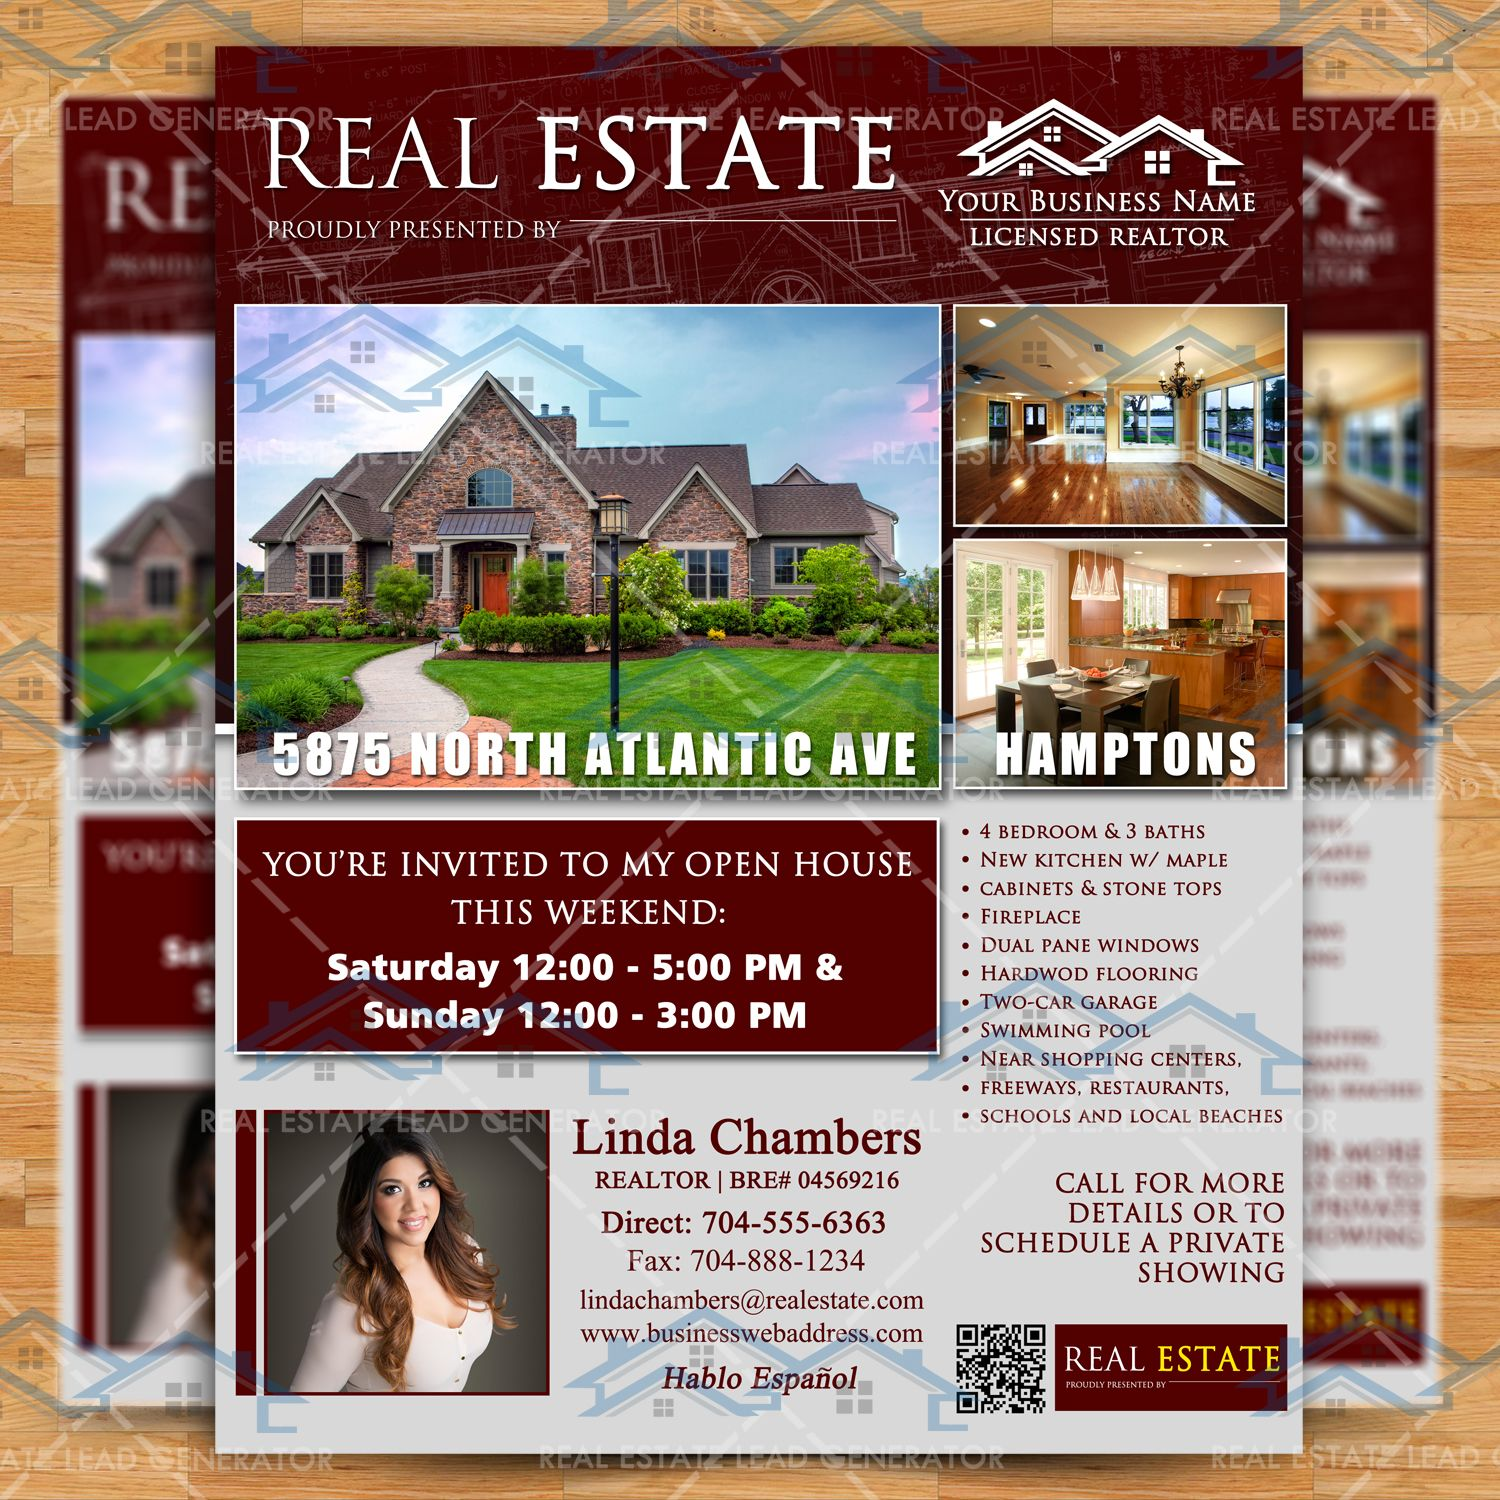 Open House Real Estate Flyer Template Property Listing Brochure – Real Estate Open House Flyer Template